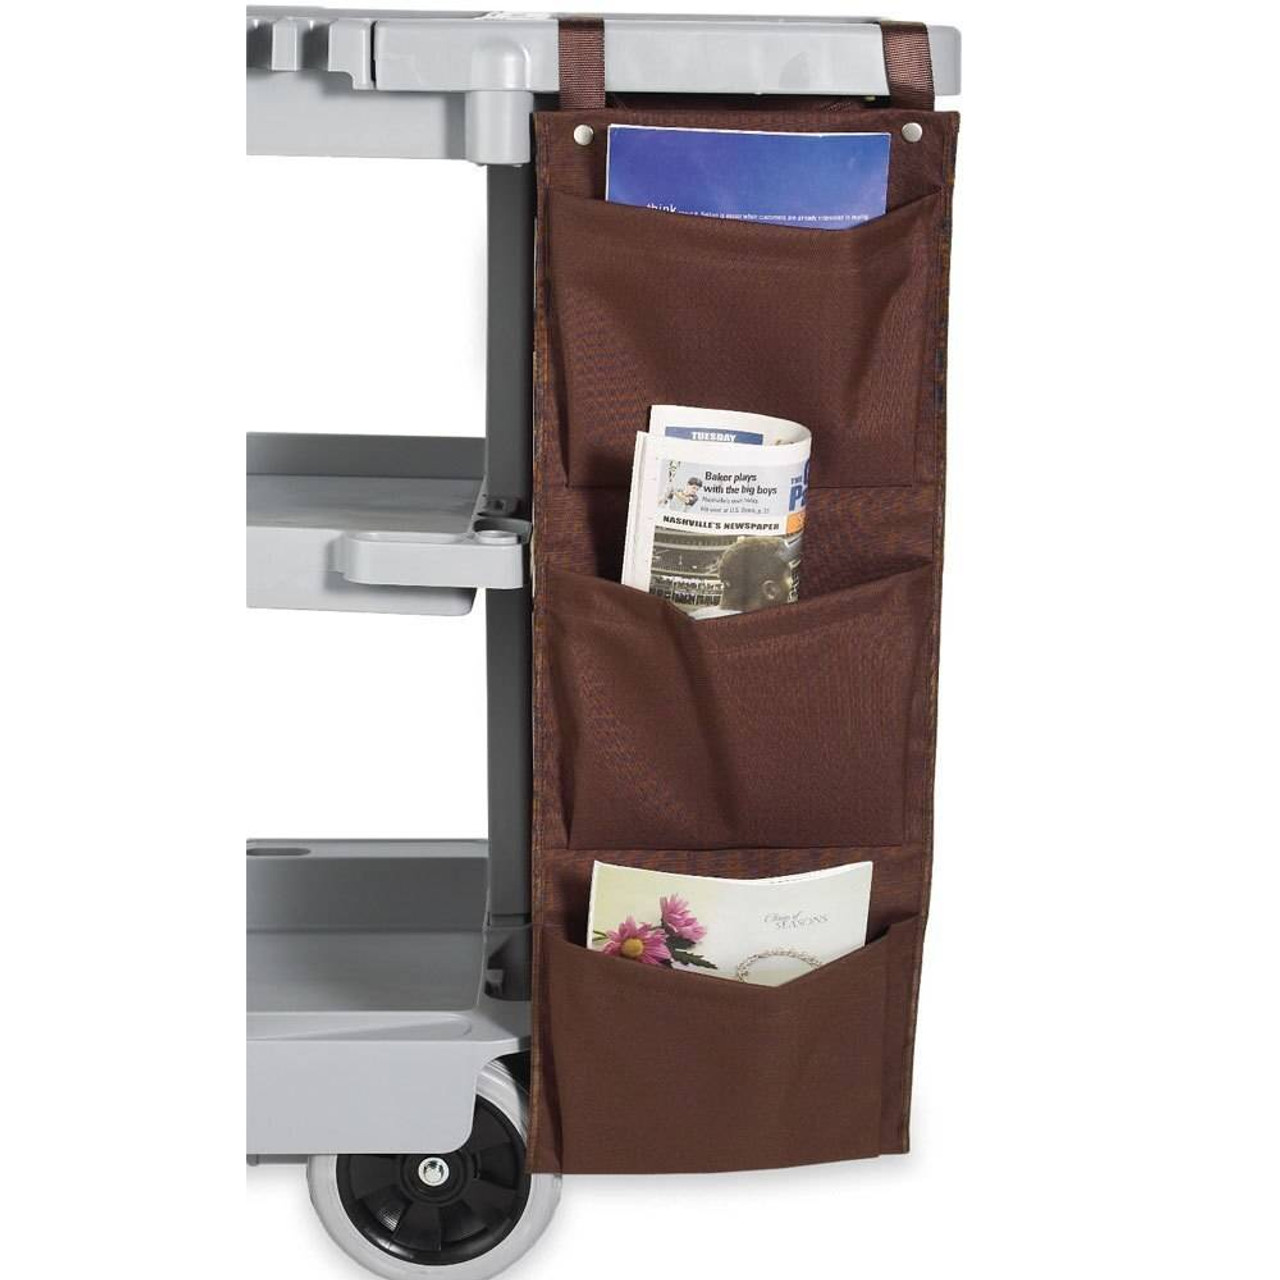 HOSPITALITY 1 SOURCE HOSPITALITY 1 SOURCE or 3 POCKET or X DUTY HOUSEKEEPING or CADDY BAGS or 12X33 or BROWN or 5 PER CASE